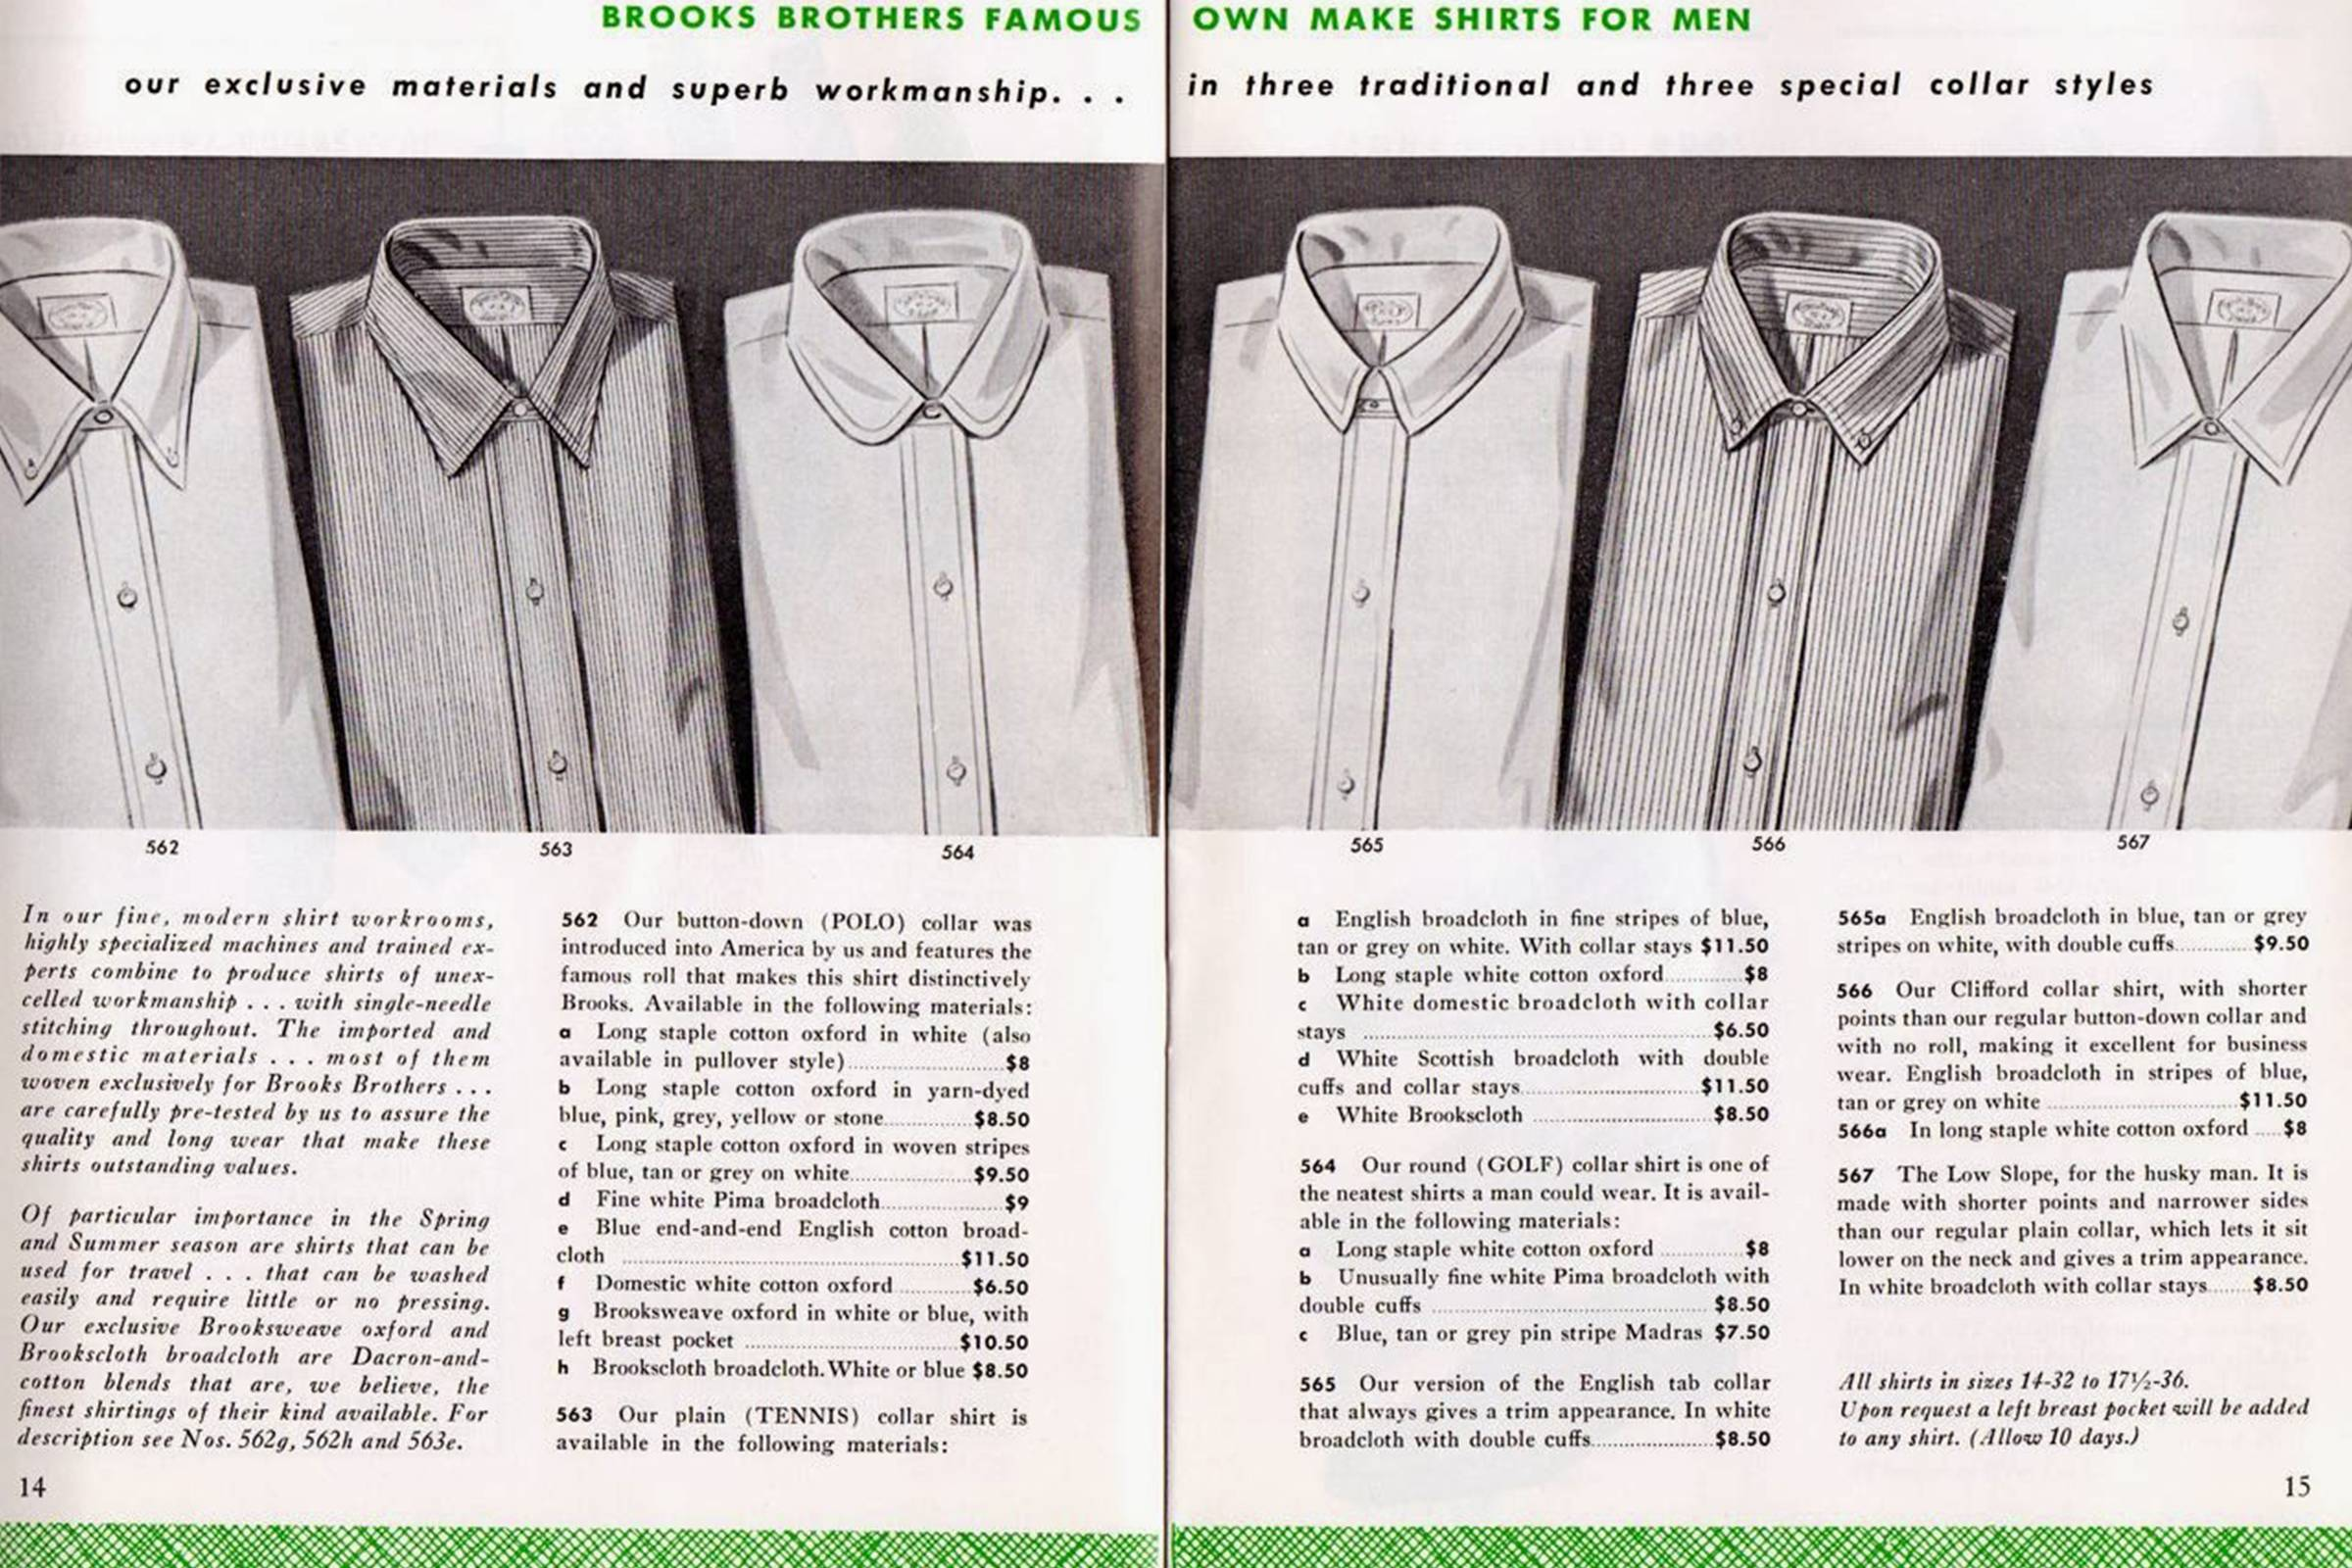 A selection of Brooks Brothers Oxford shirts